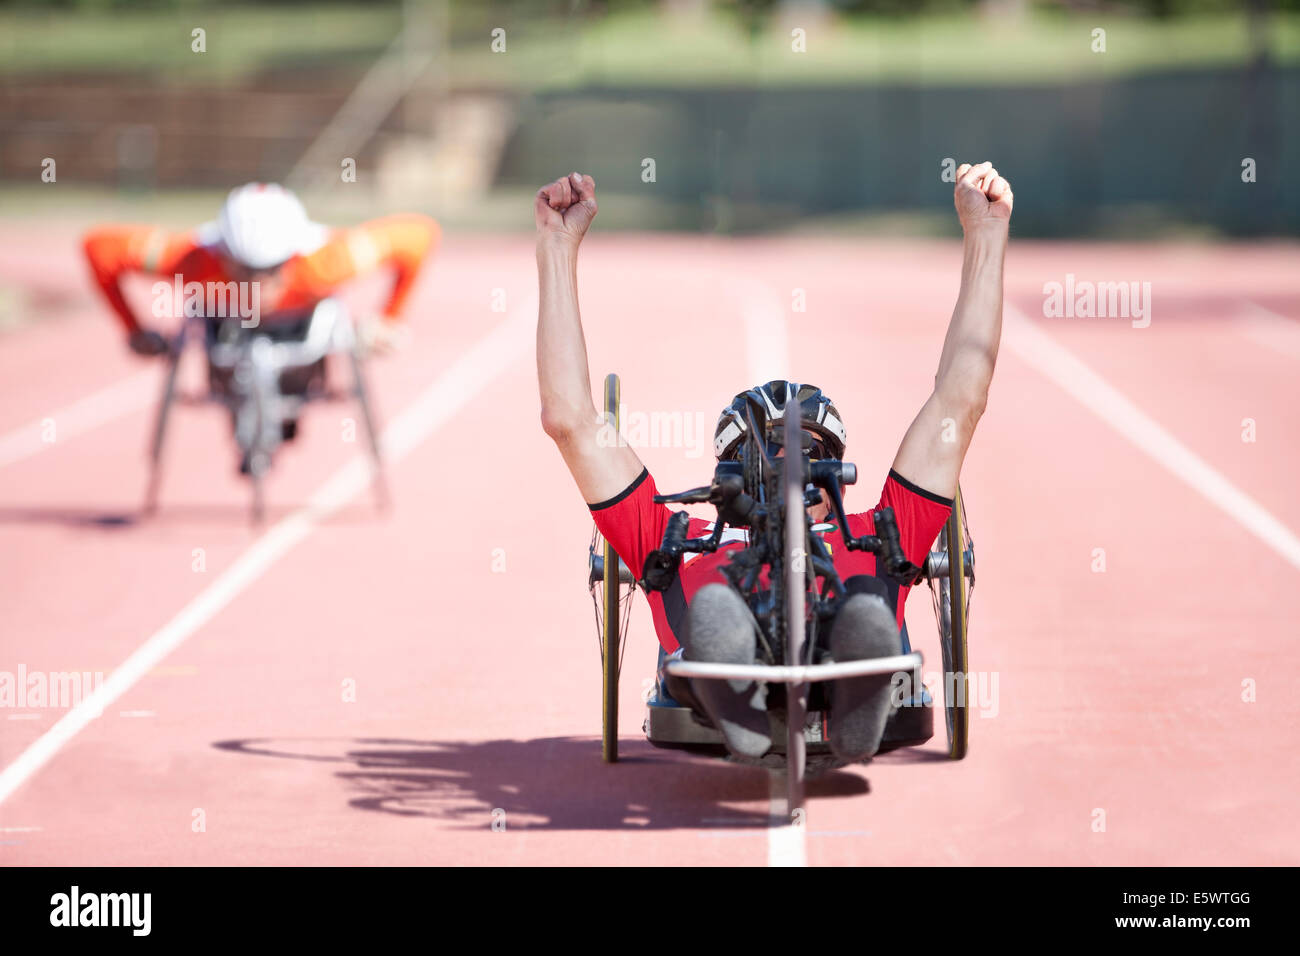 Athlete at finishing line in para-athletic competition - Stock Image